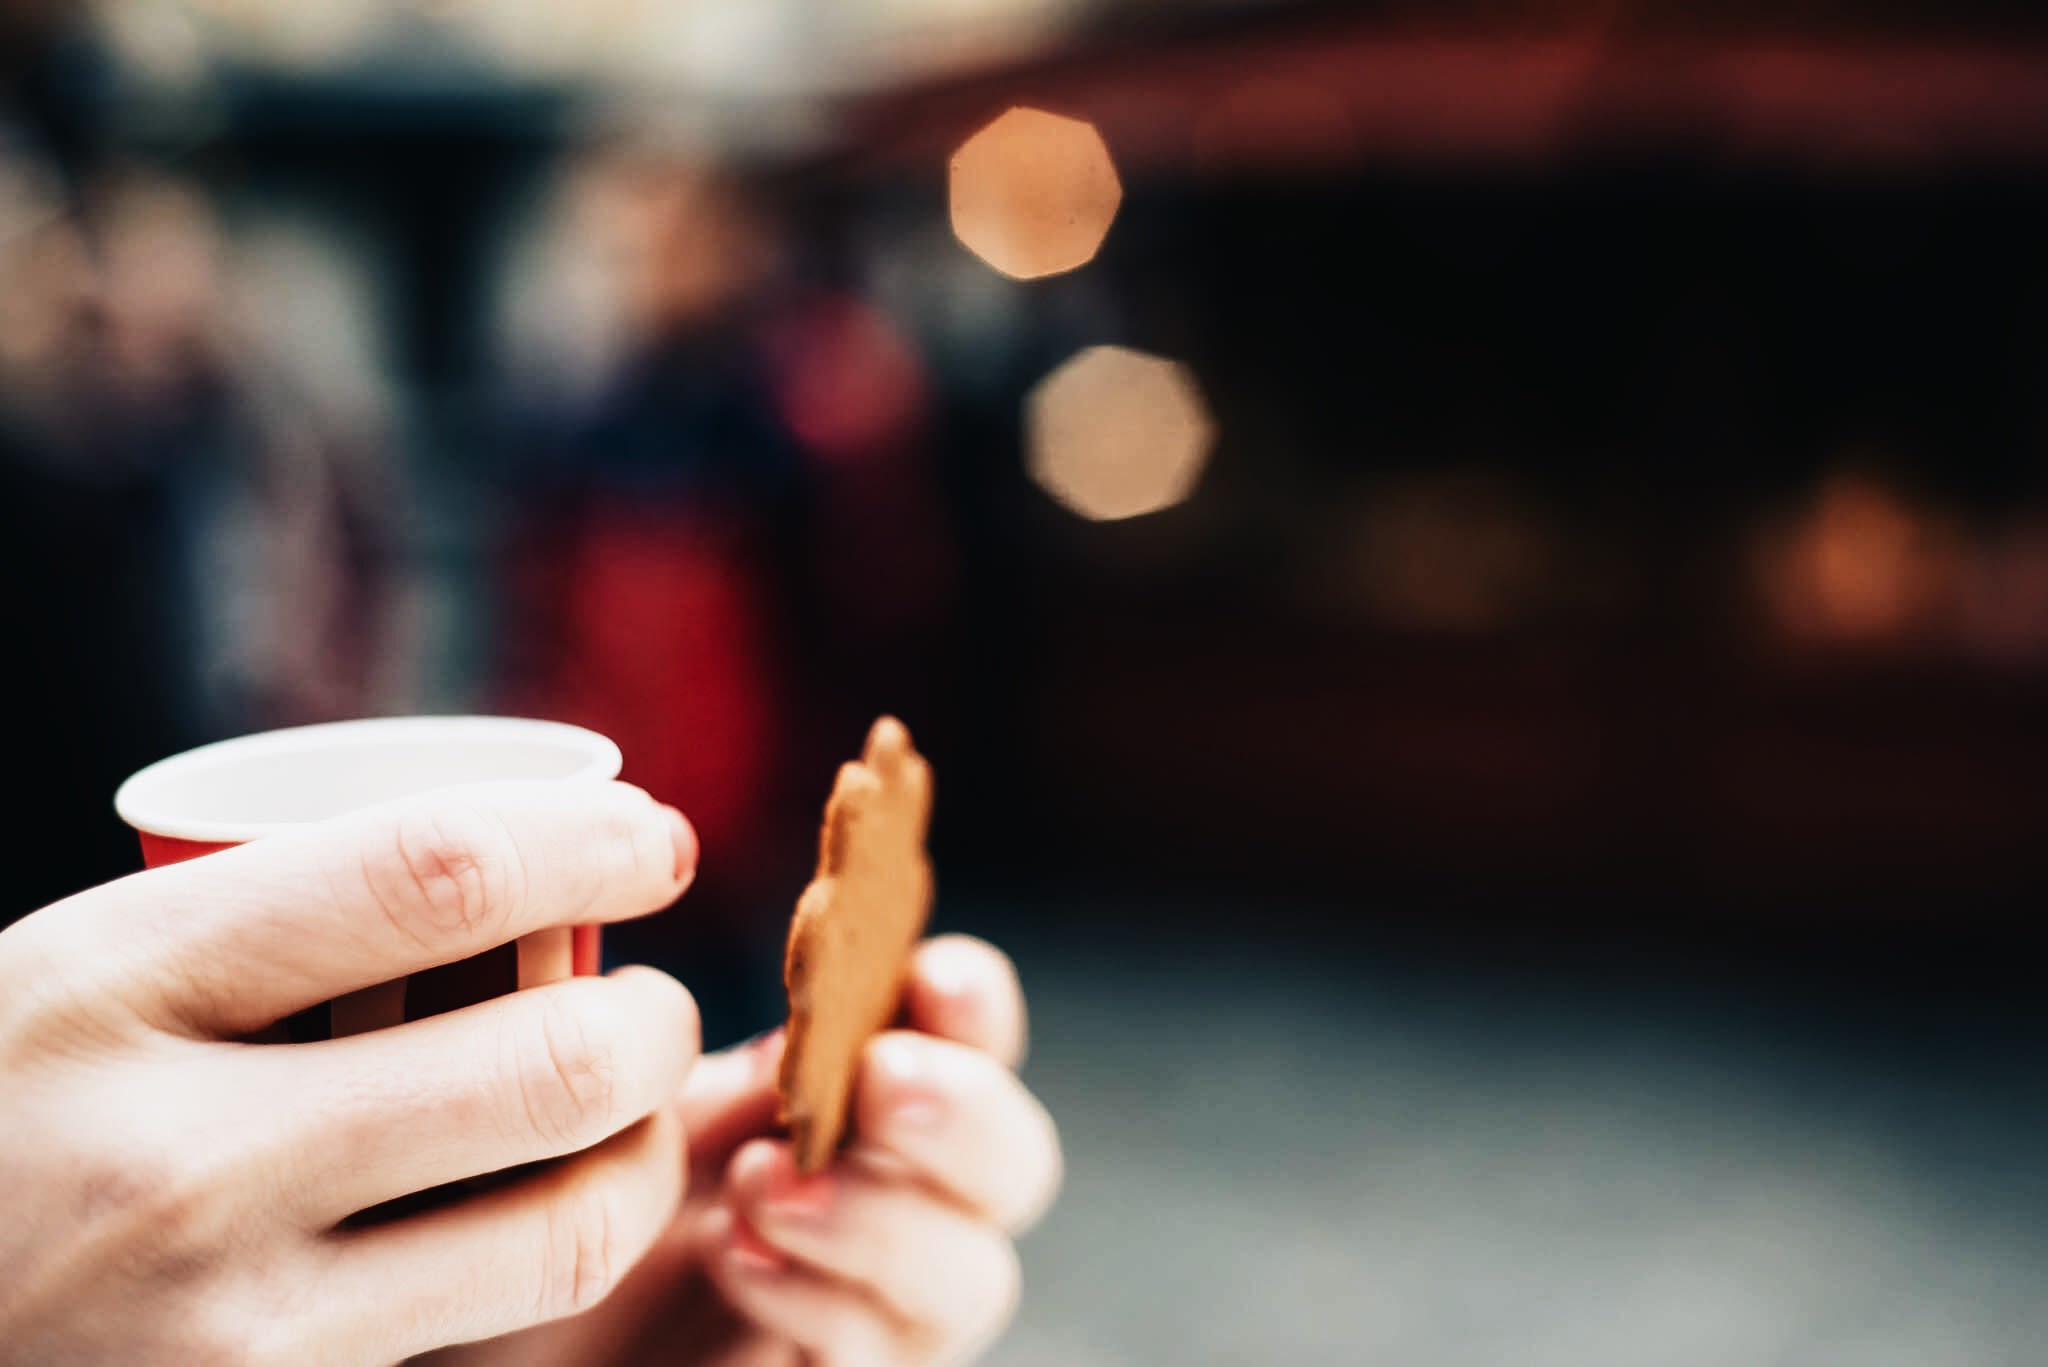 Cookie and cup in hands